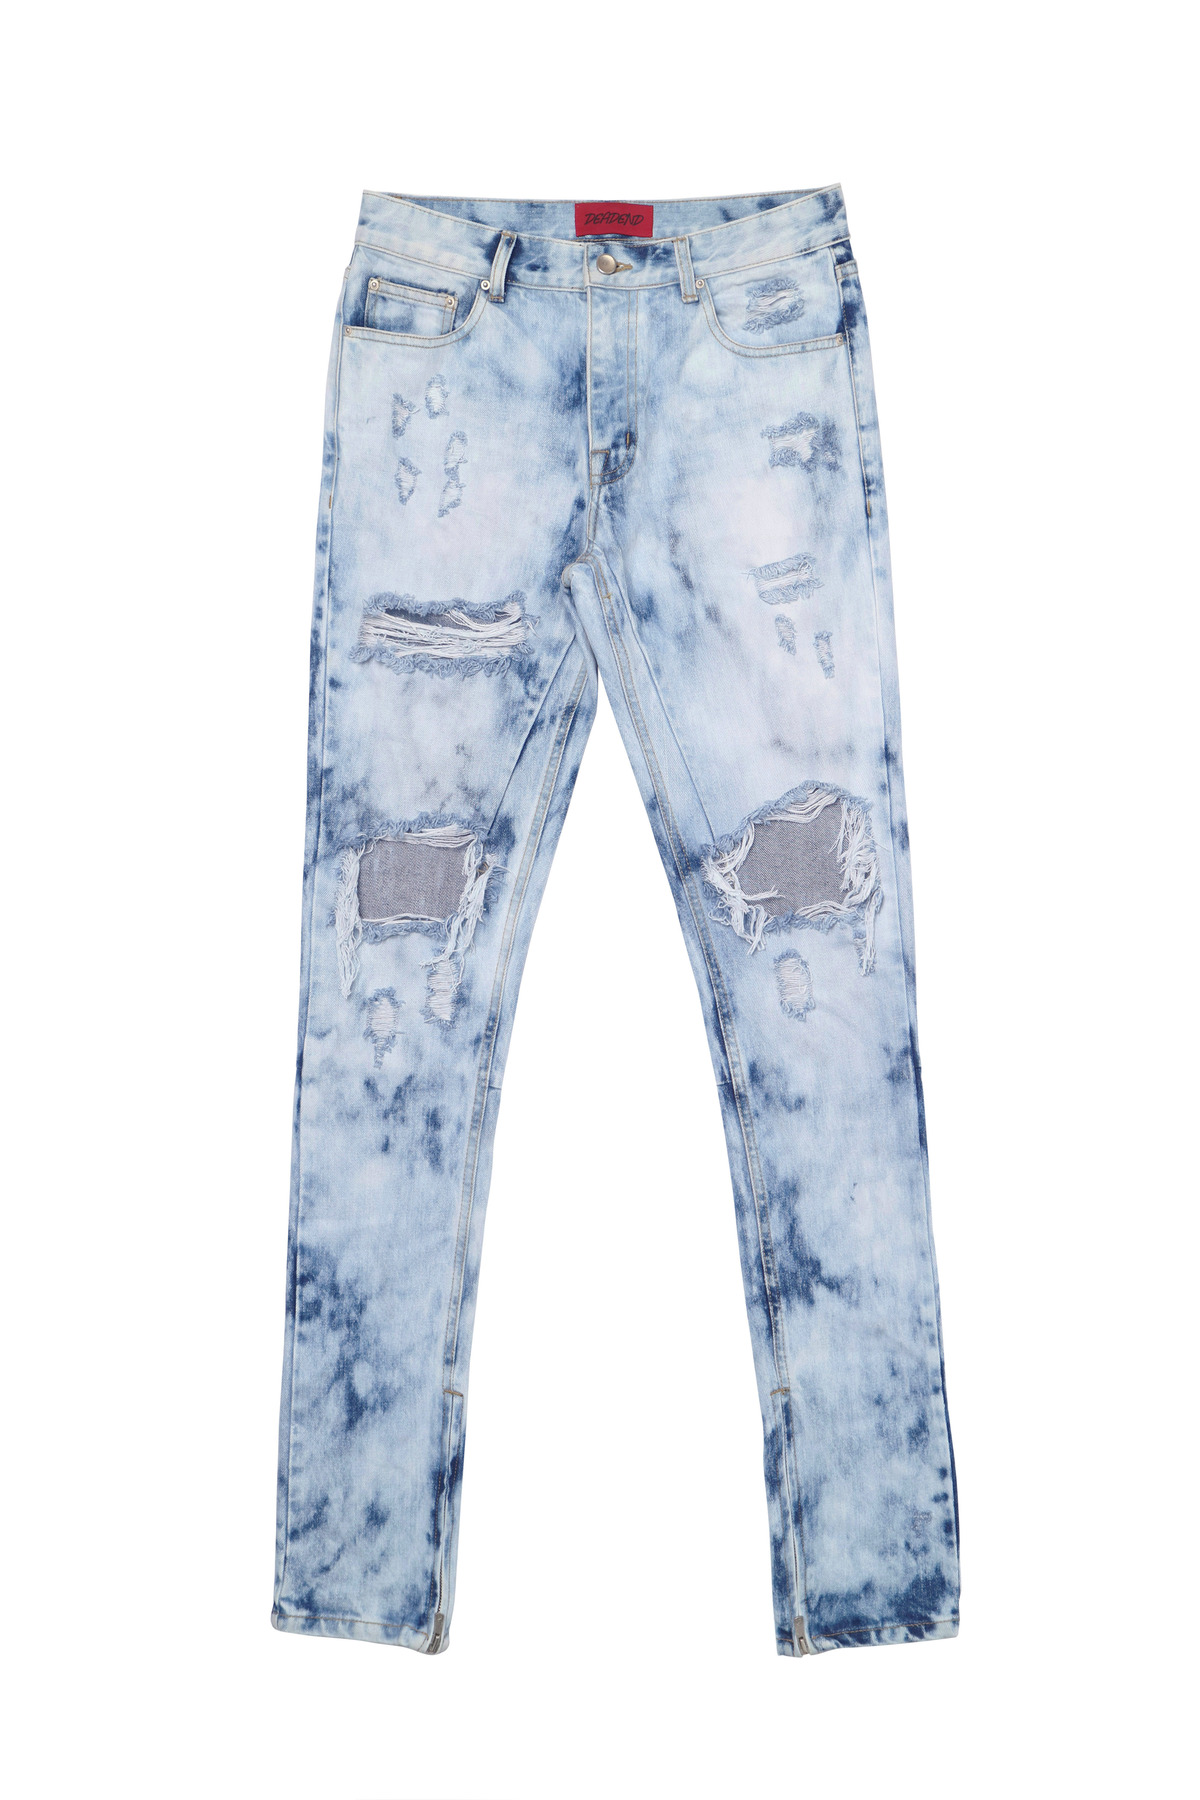 LEOPARD ZIPPER DENIM JEANS